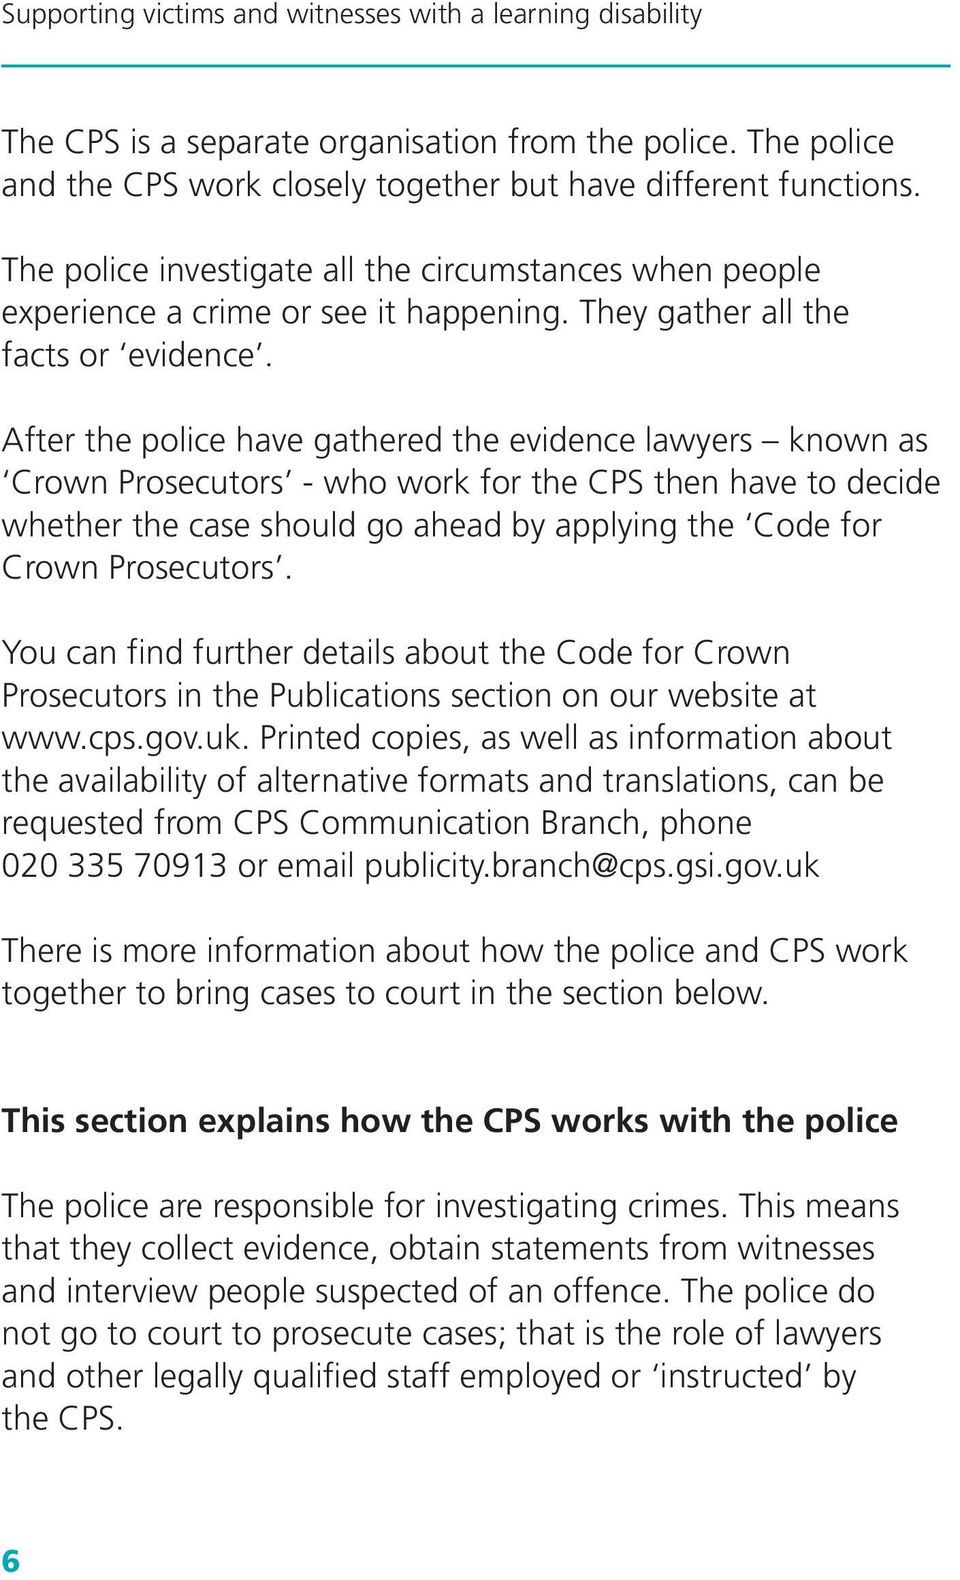 After the police have gathered the evidence lawyers known as Crown Prosecutors - who work for the CPS then have to decide whether the case should go ahead by applying the Code for Crown Prosecutors.